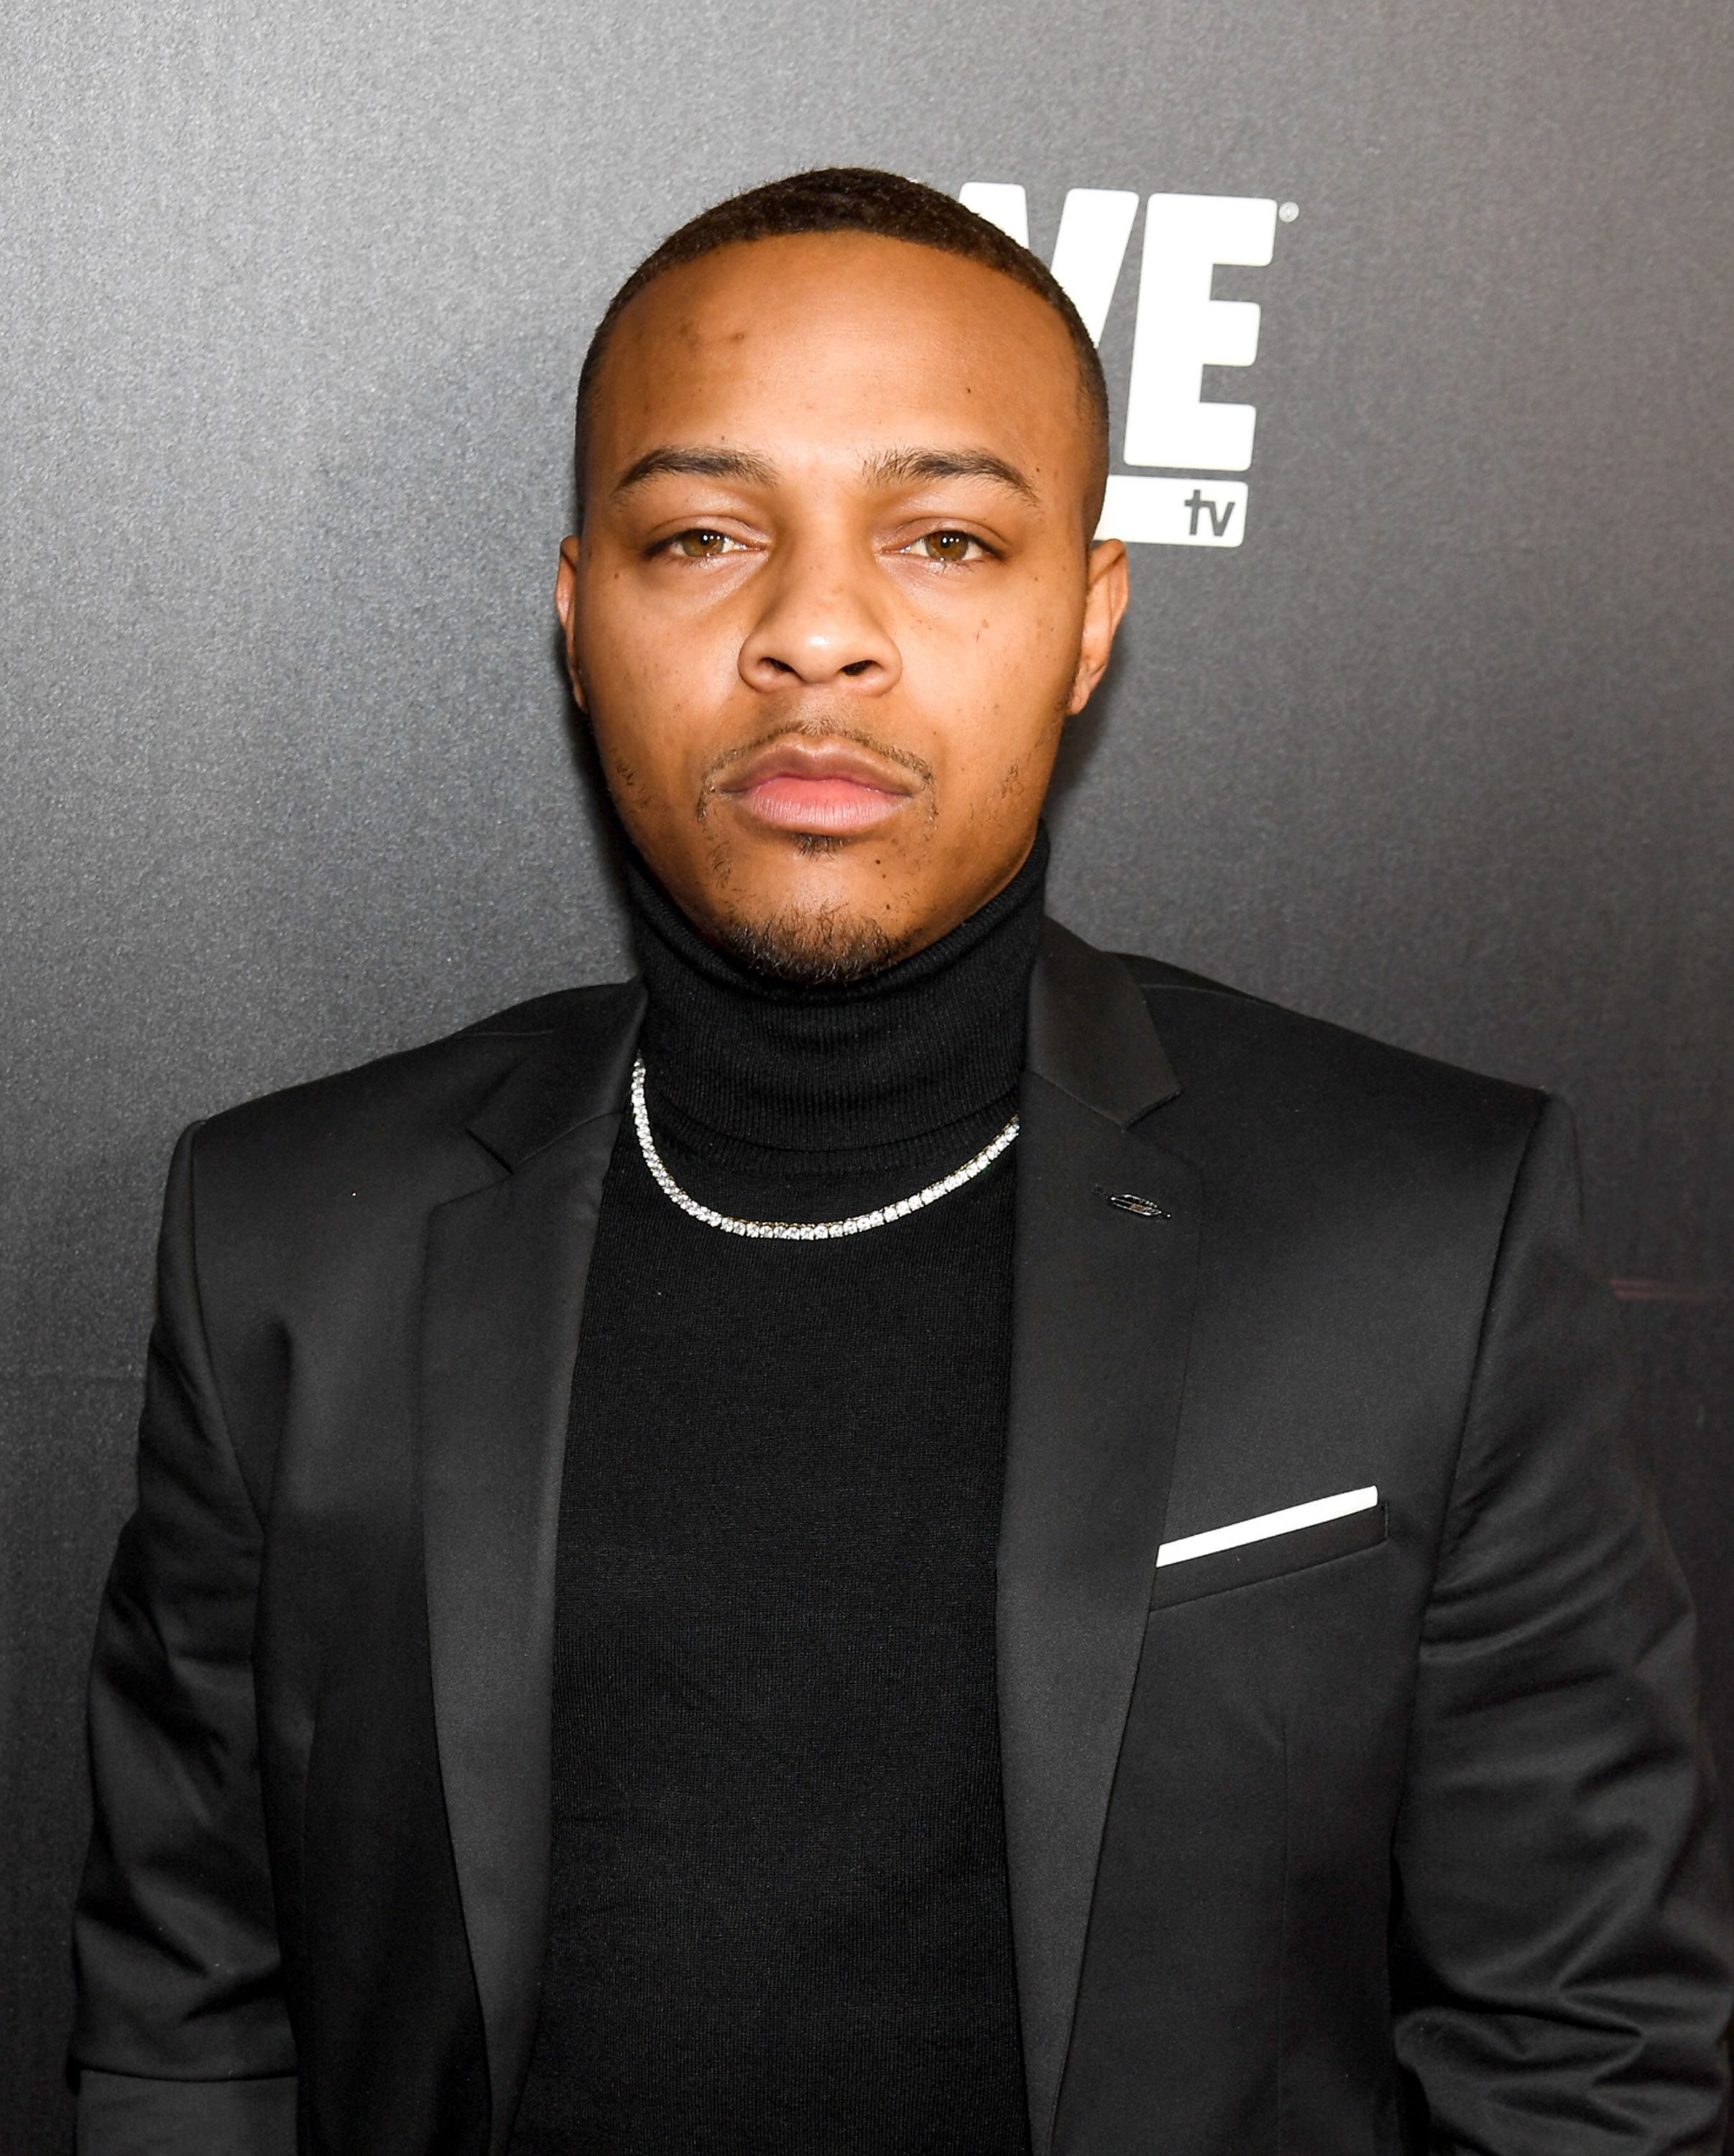 Bow Wow at Woodruff Arts Center in Atlanta on January 9, 2018. | Photo: Getty Images